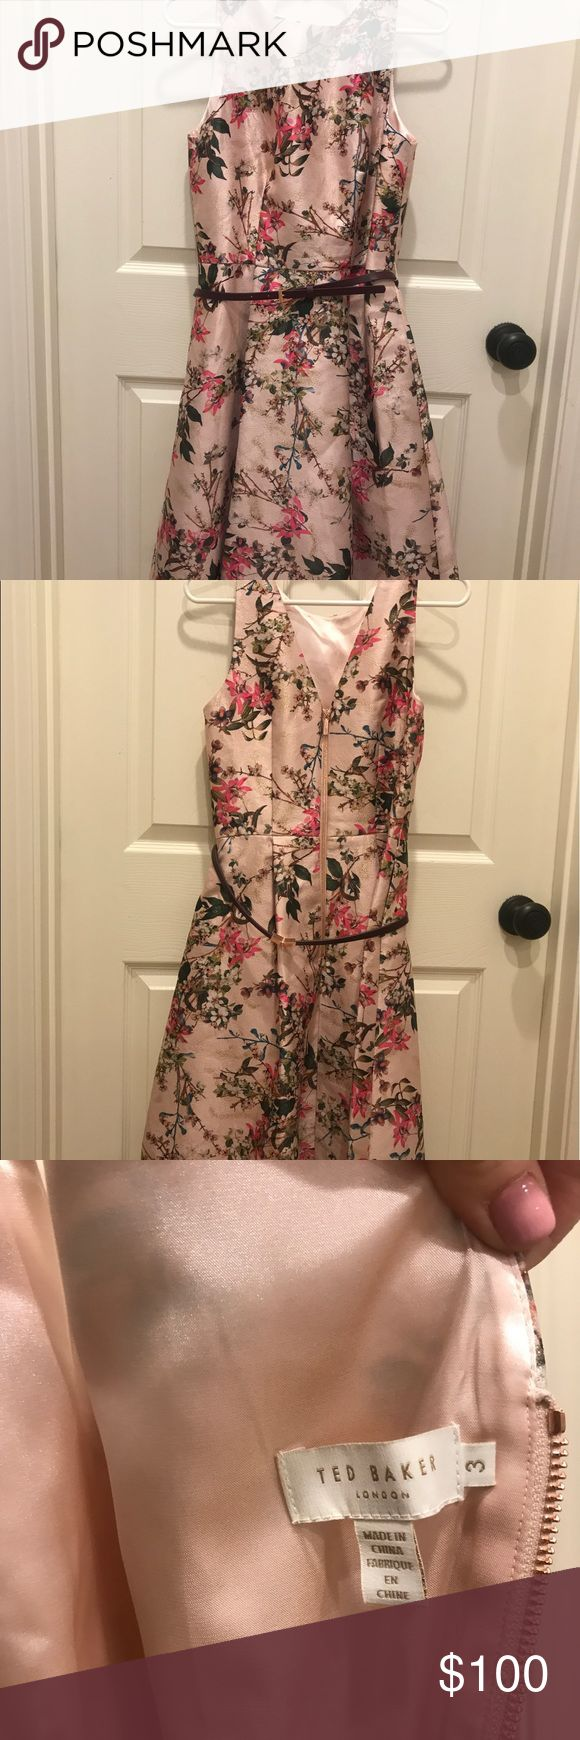 Ted Baker floral print midi dress UK size 3 Authentic Ted Baker floral print a-line midi dress. Very beautiful springlike print with gold shimmer in fabric. Comes with coordinating belt. Fits like an 8/10. Worn once to a wedding. Ted Baker London Dresses Midi